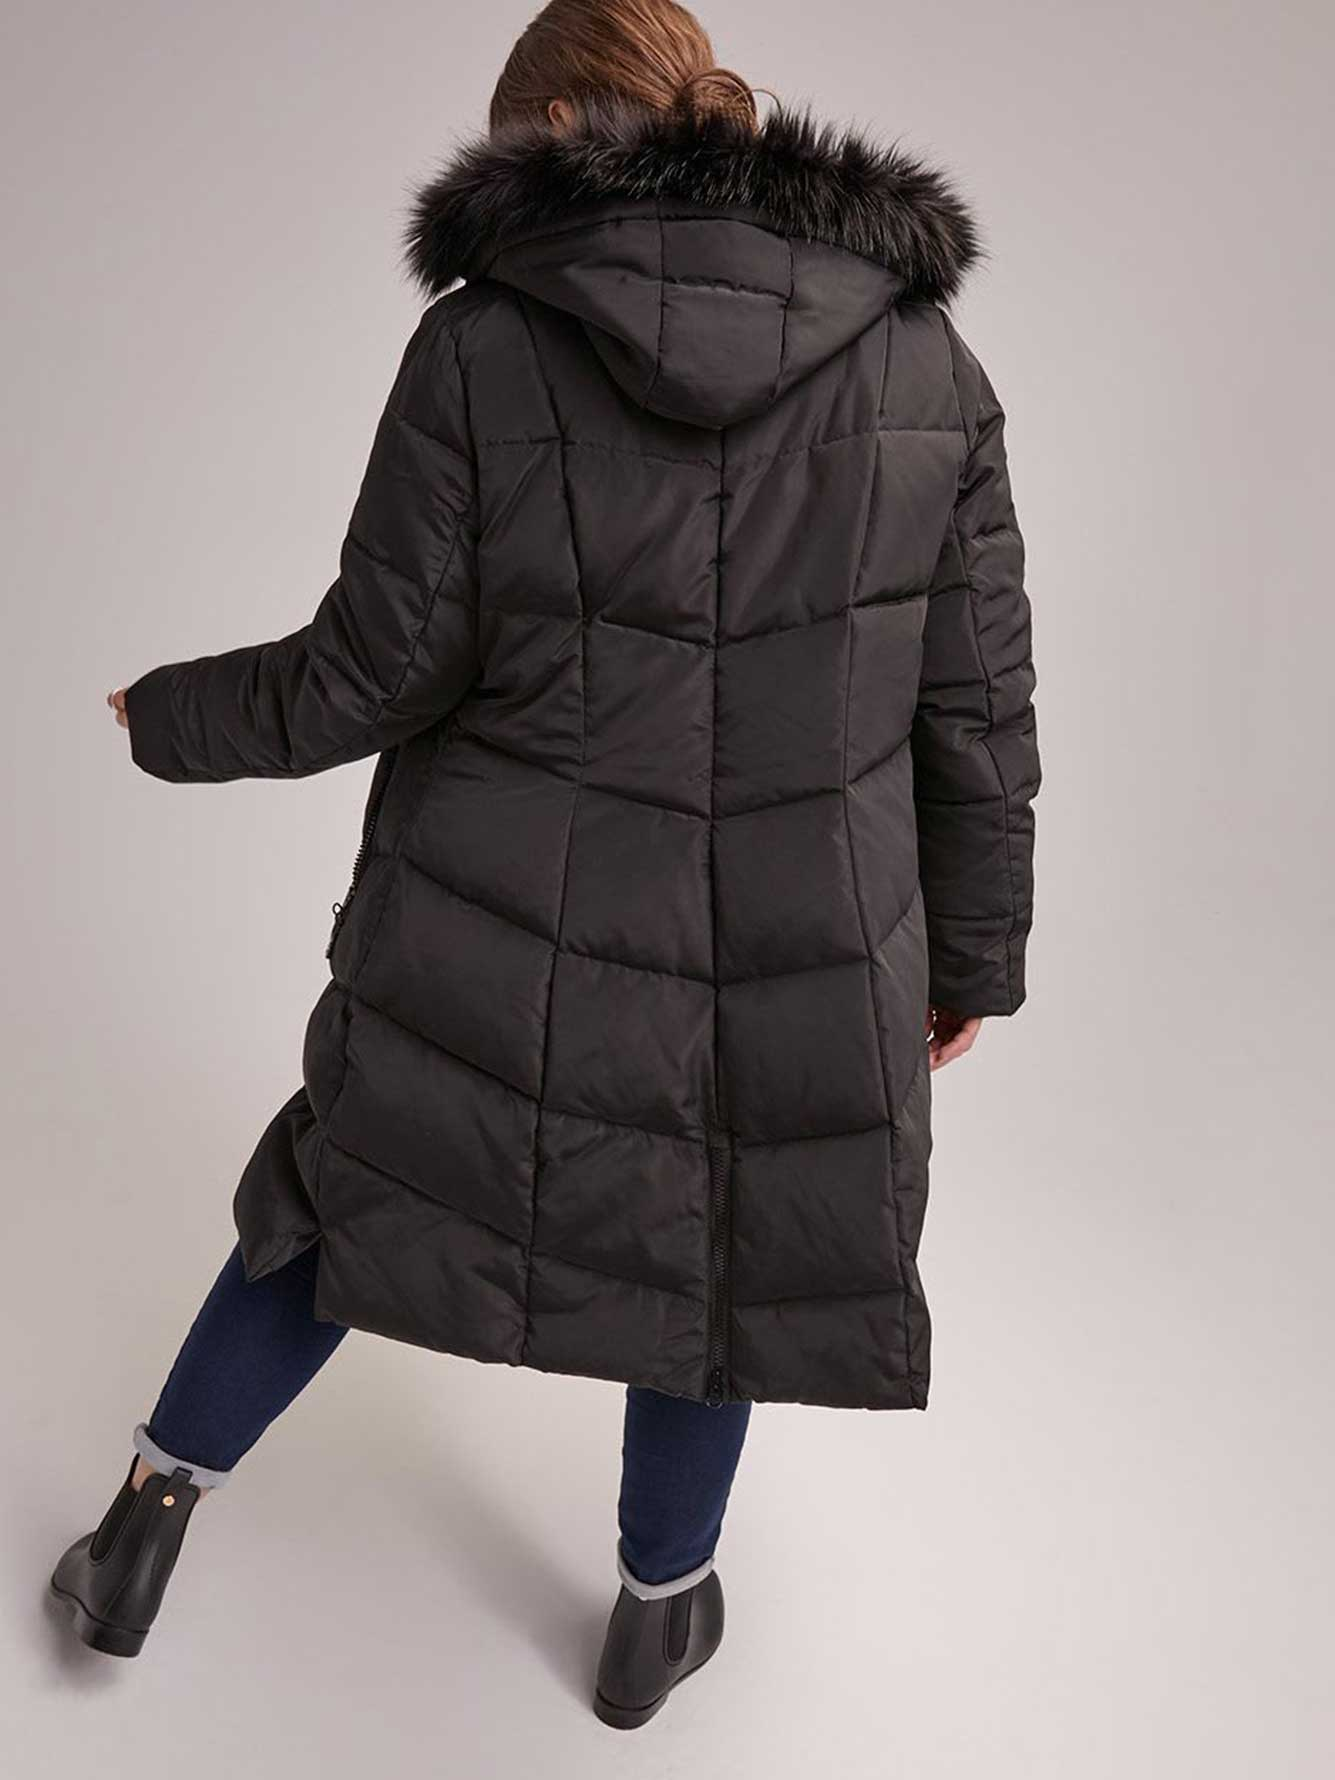 Hooded Long Puffer Coat with Removable Faux Fur Trim - Livik